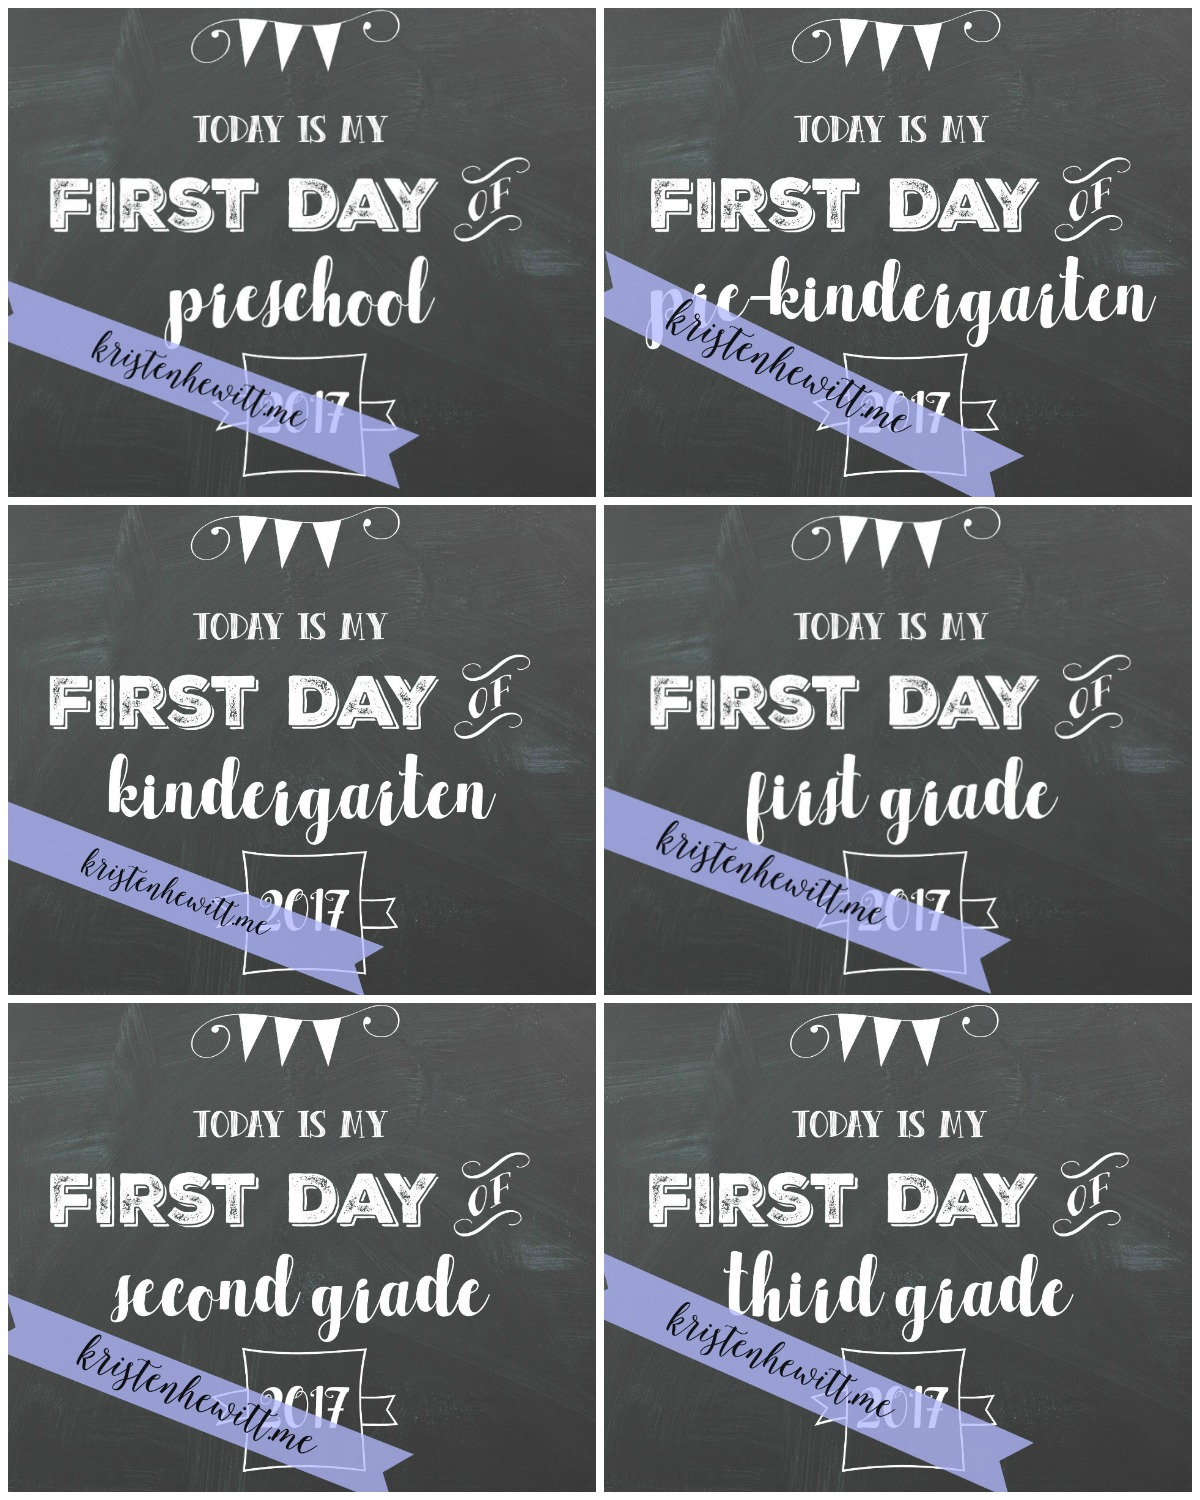 Free Chalkboard First Day Of School Printables - Kristen Hewitt - Free Printable First Day Of School Chalkboard Signs